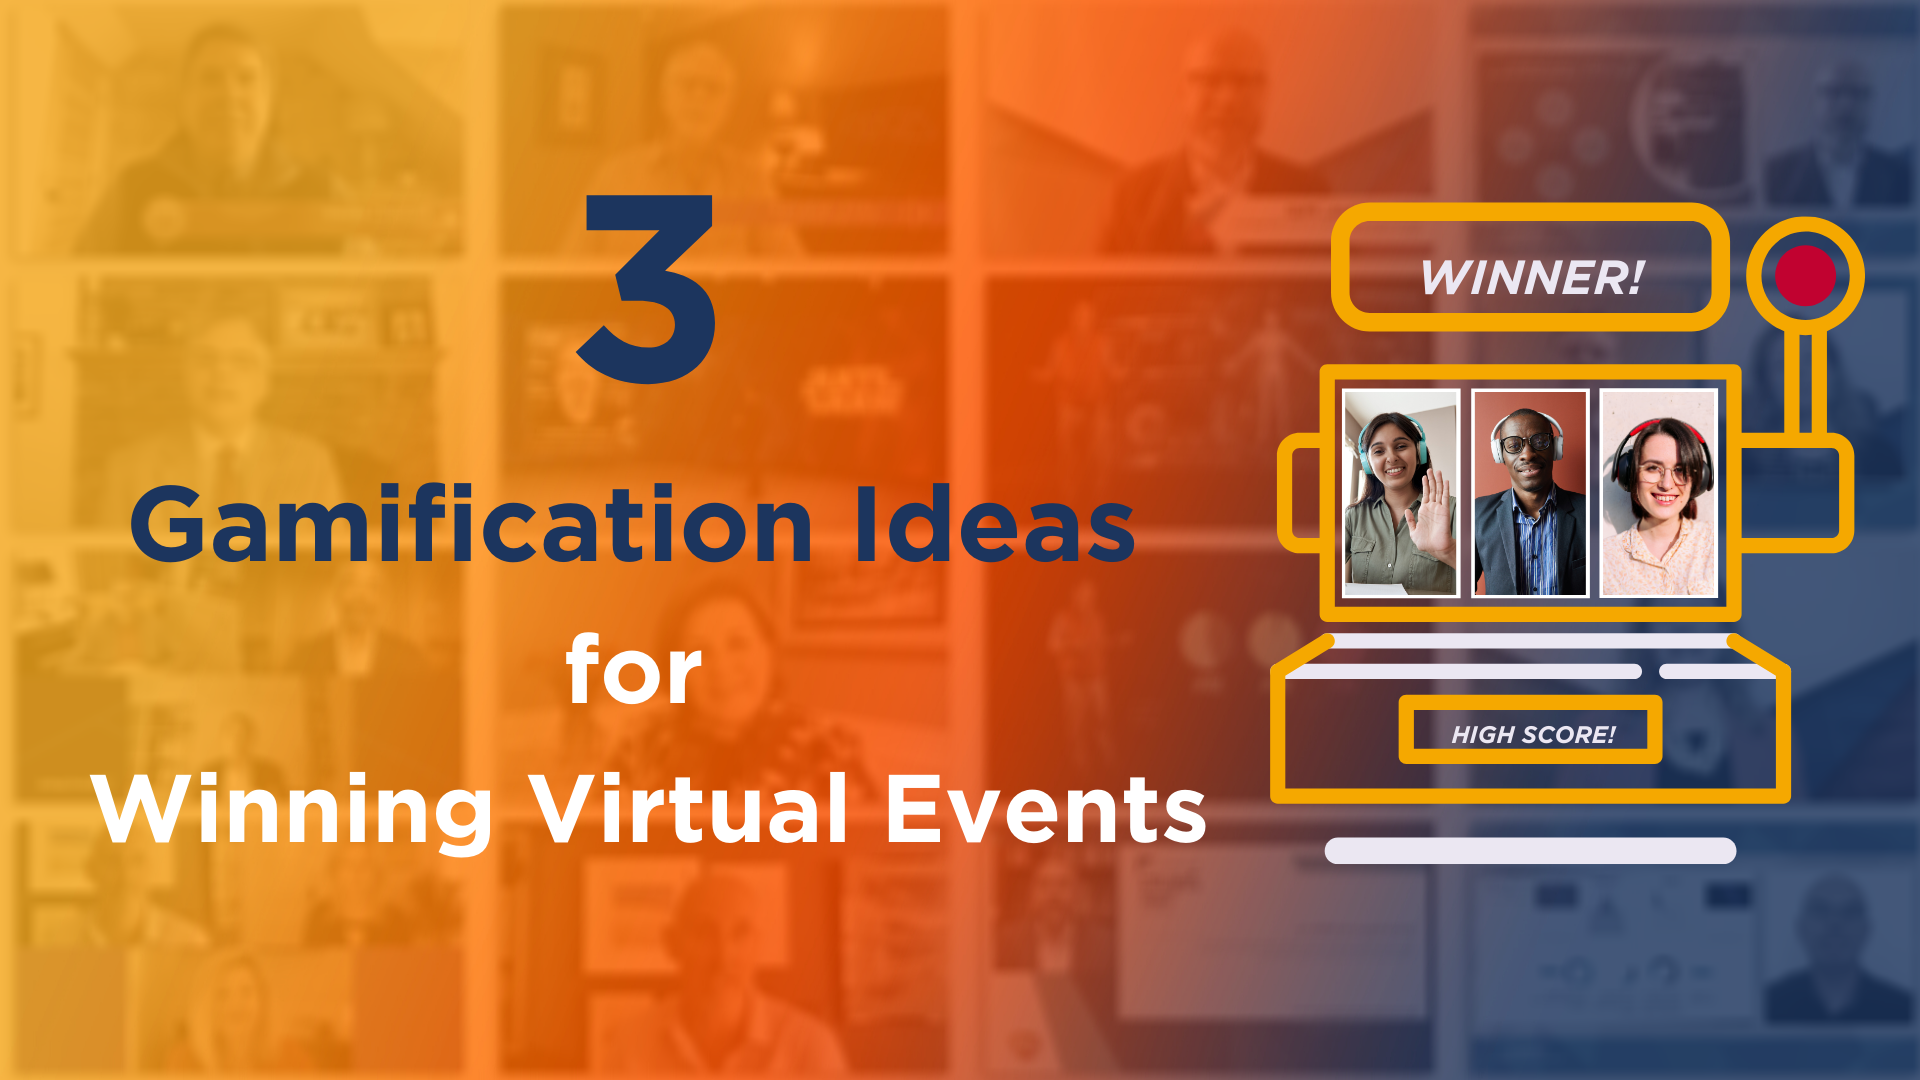 3 Gamification Ideas for Winning Virtual Events